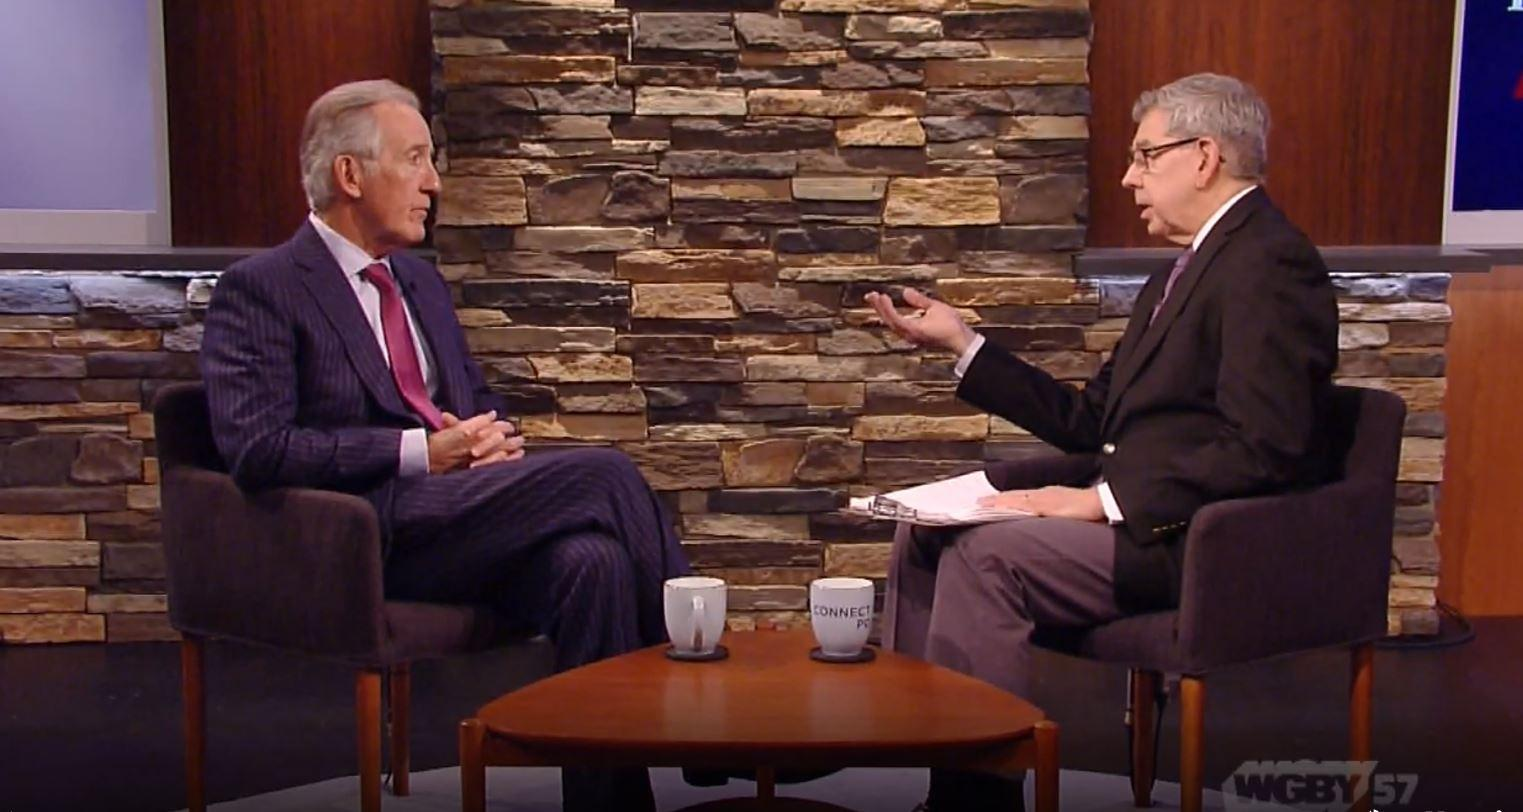 Mass. Rep. Richard Neal discusses his new role as the Chair of the US House Ways & Means Committee and if he plans to request President Trump's tax returns.